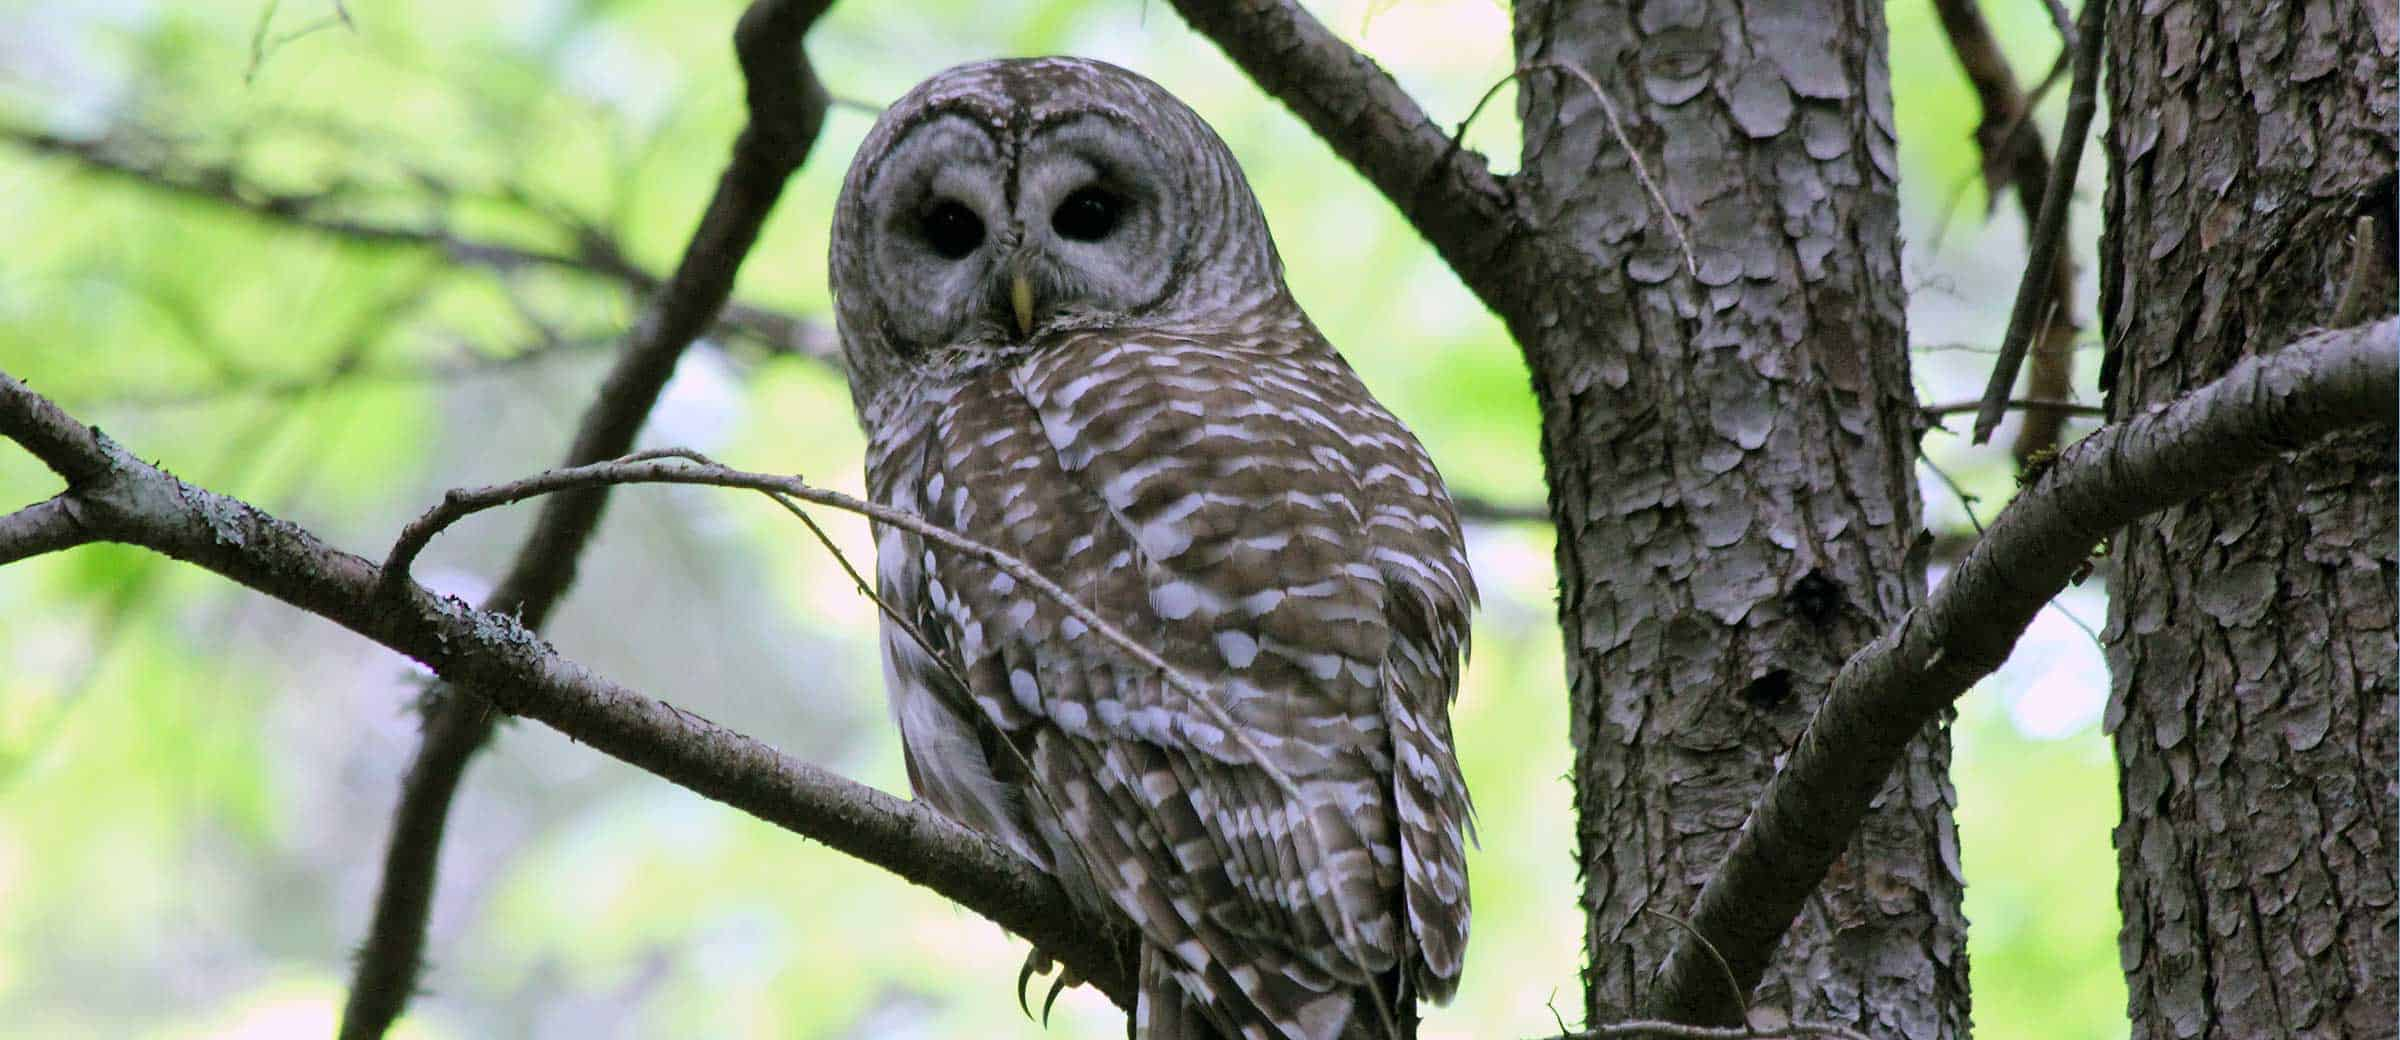 Barred Owl. Photo by Jeff Romano.